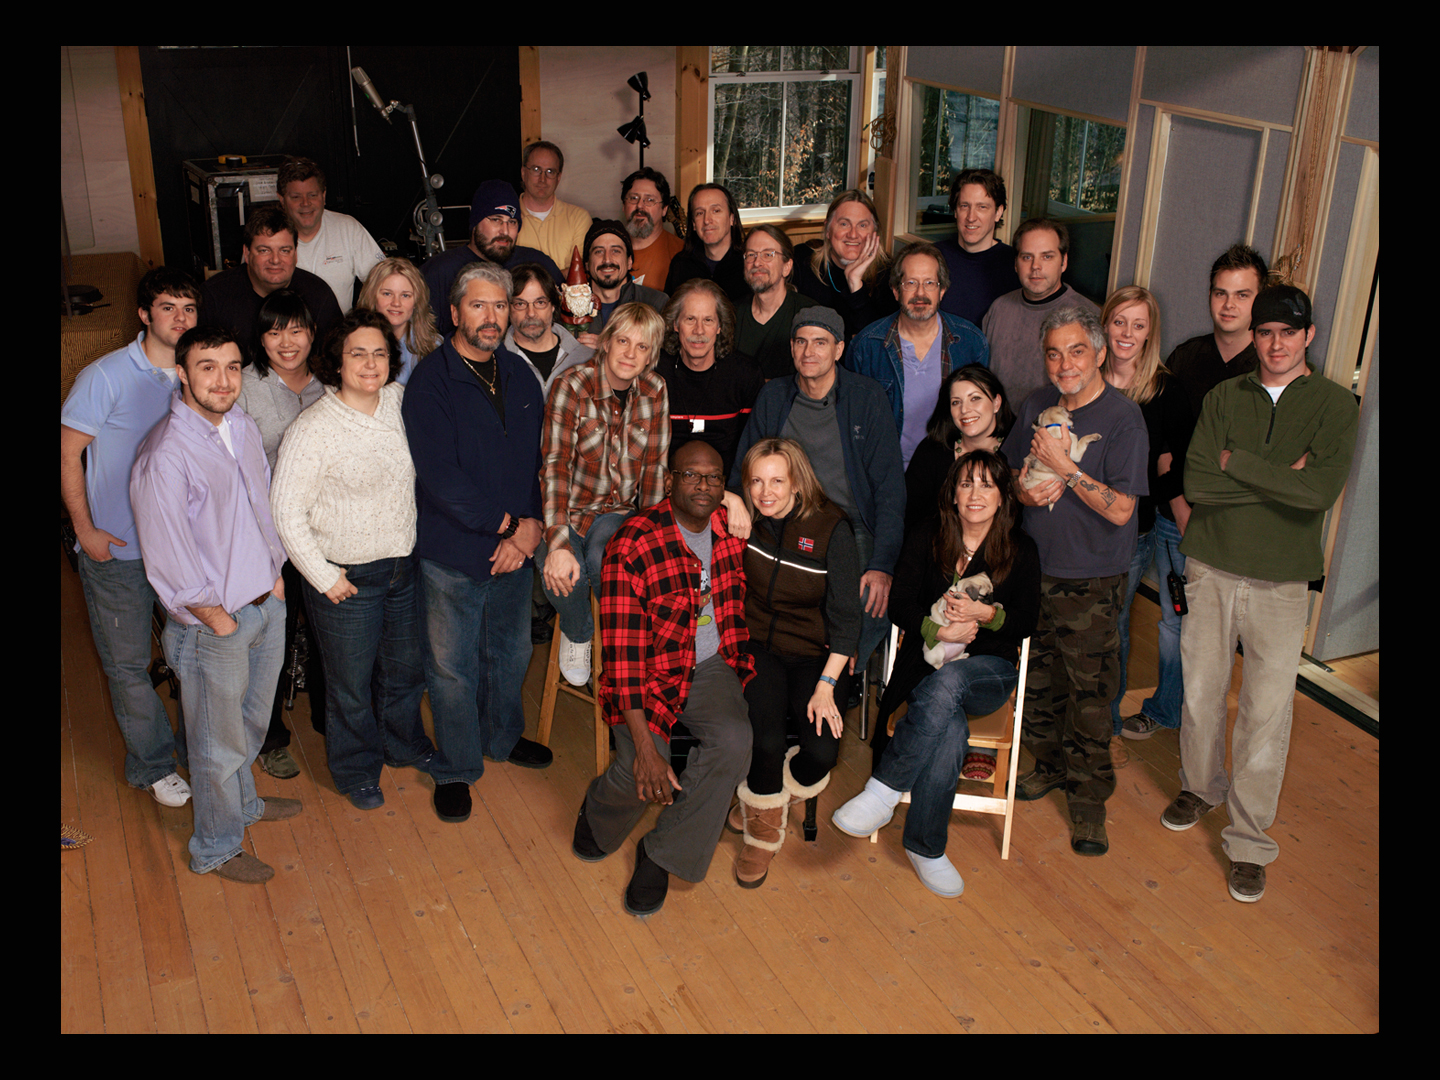 """the whole James Taylor camp during the making of """"Covers"""", 2008, """"The Barn"""" Lenox, Mass"""